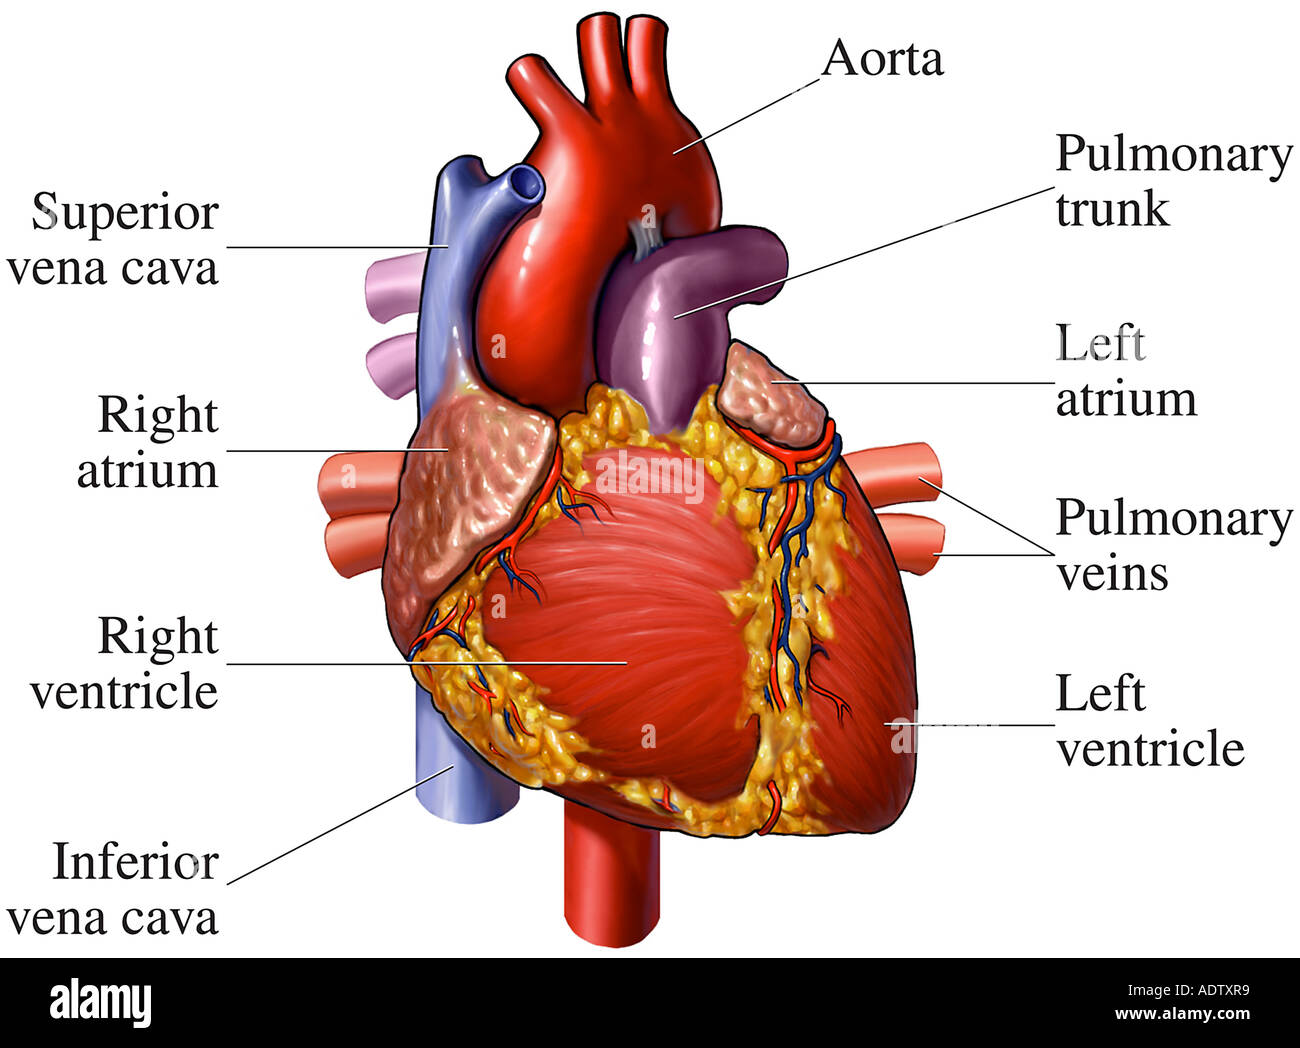 Front View Heart Blood Vessels Stock Photos & Front View Heart Blood ...